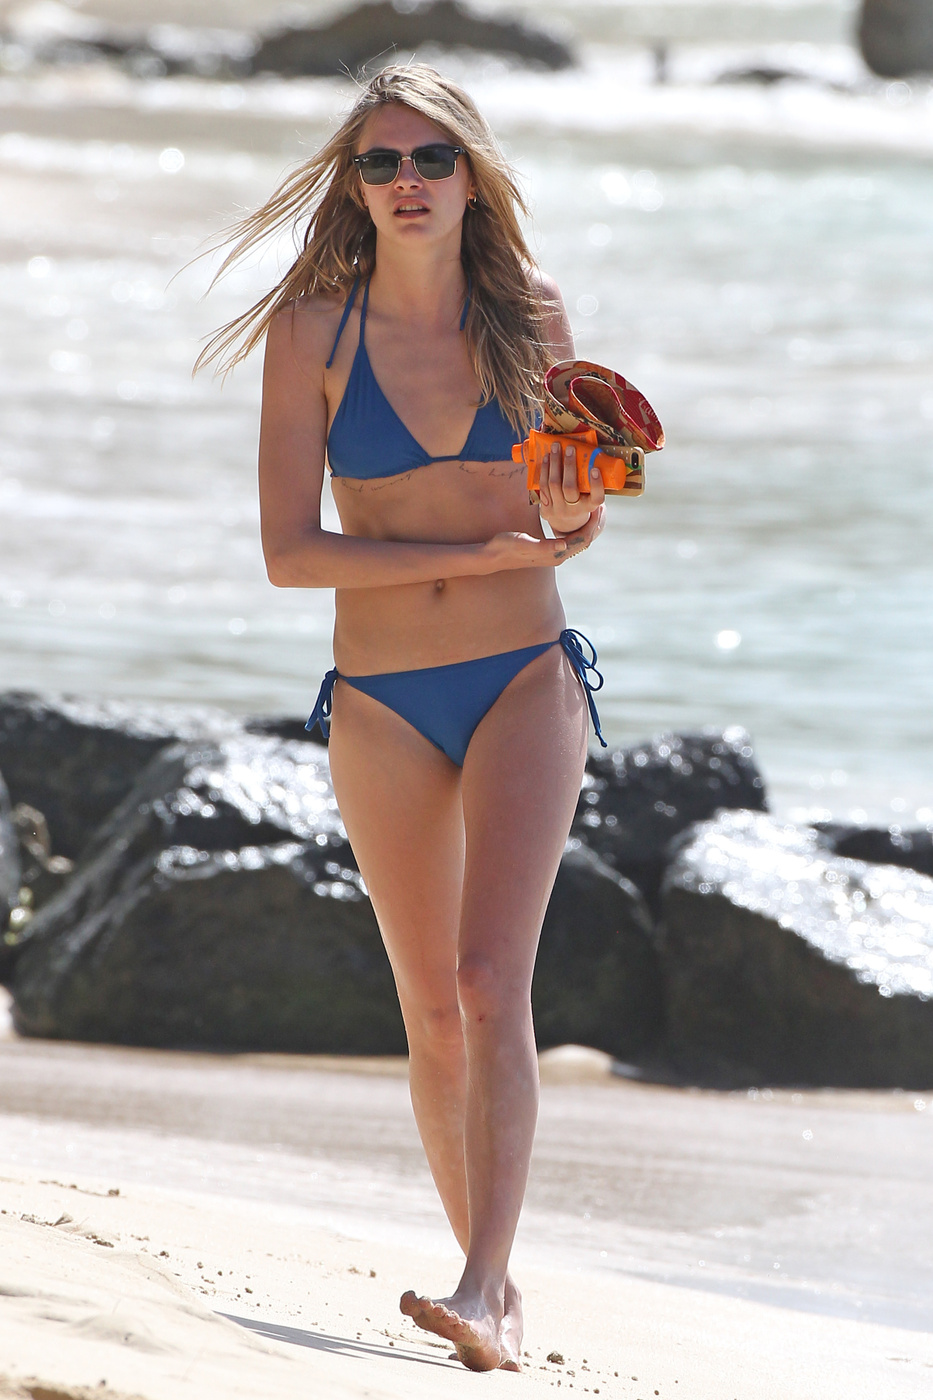 Cara Delevingne opts for some sunbathing on a boat while her friends do some water sports in Barbados